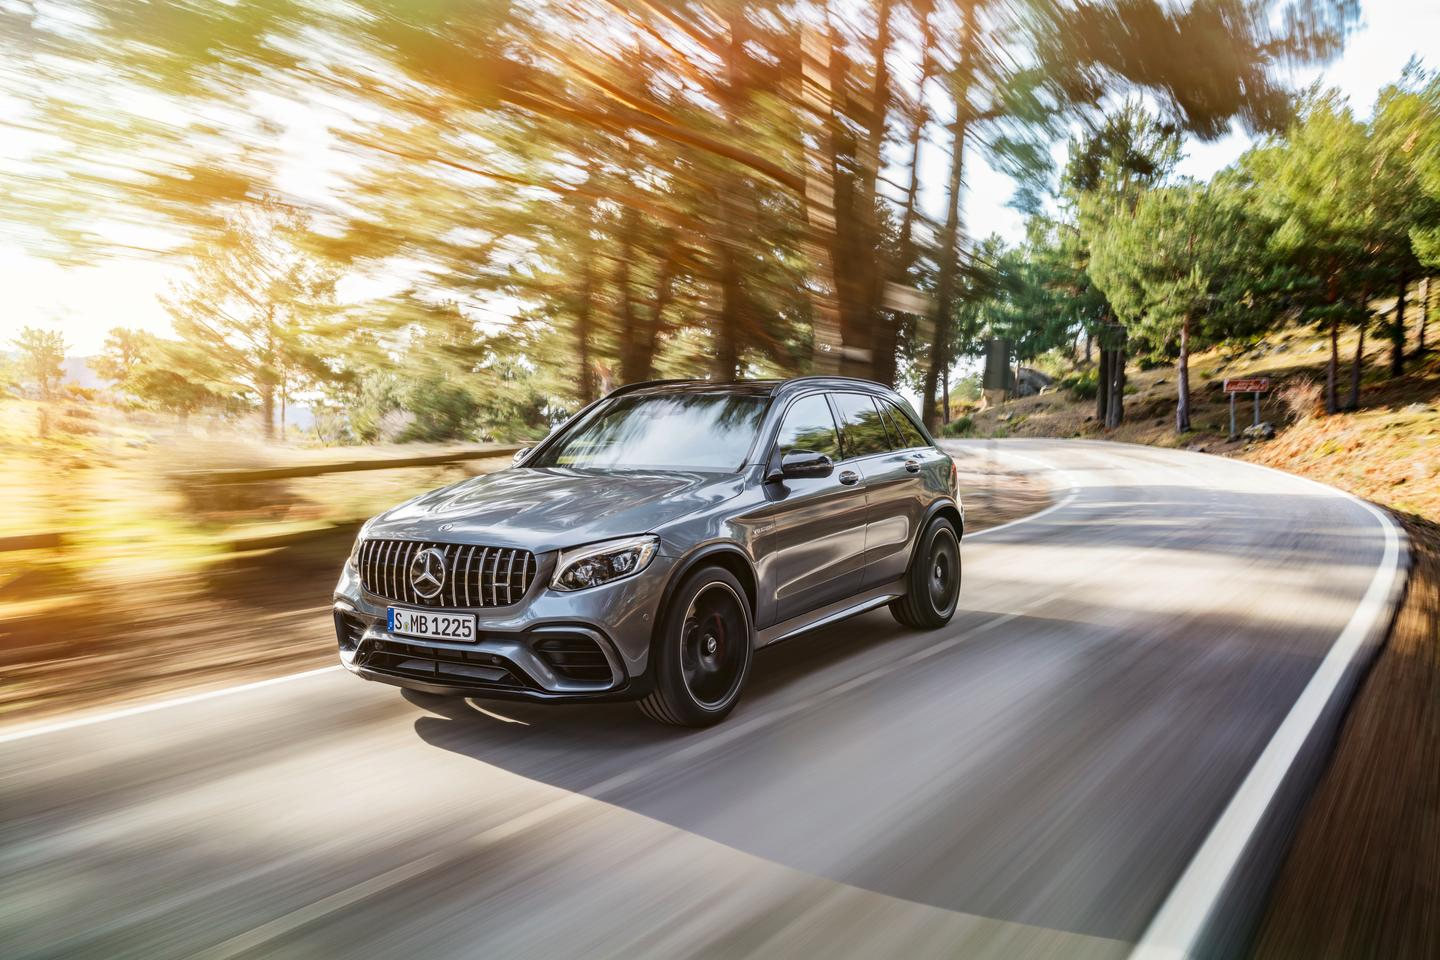 The Panamerica grille on the GLC63 has been borrowed from GT supercar